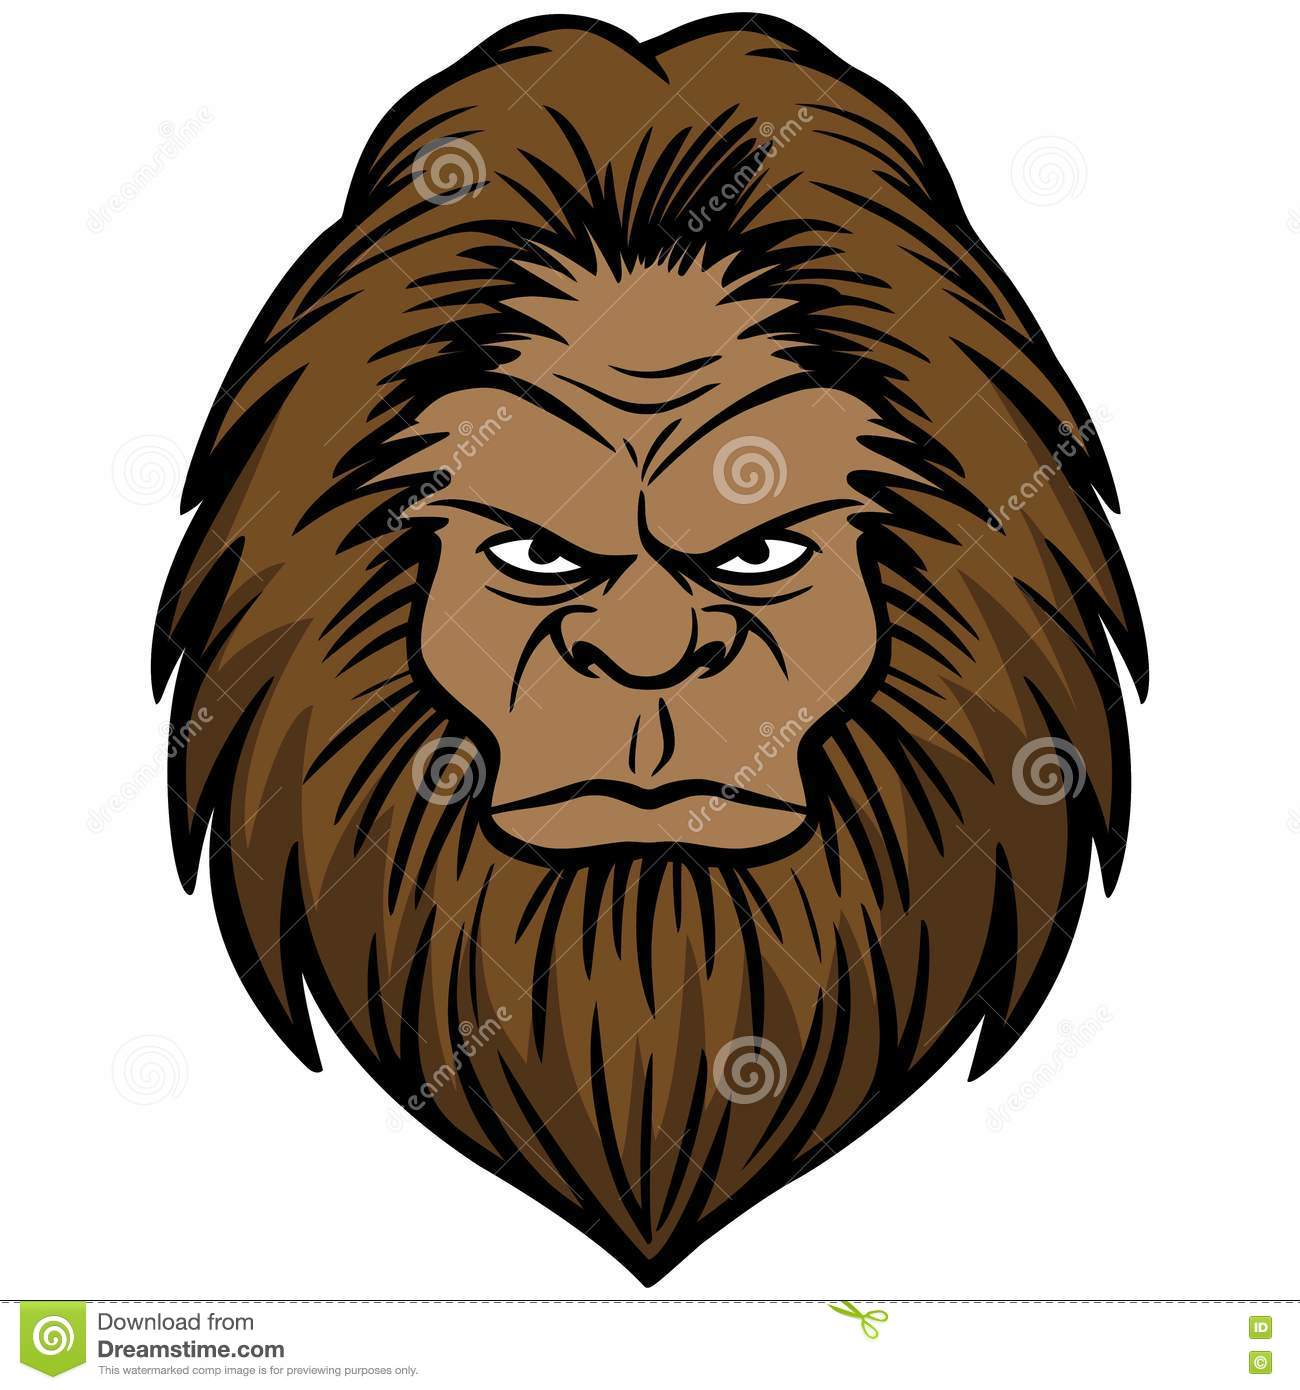 bigfoot stock illustrations 1 526 bigfoot stock illustrations rh dreamstime com